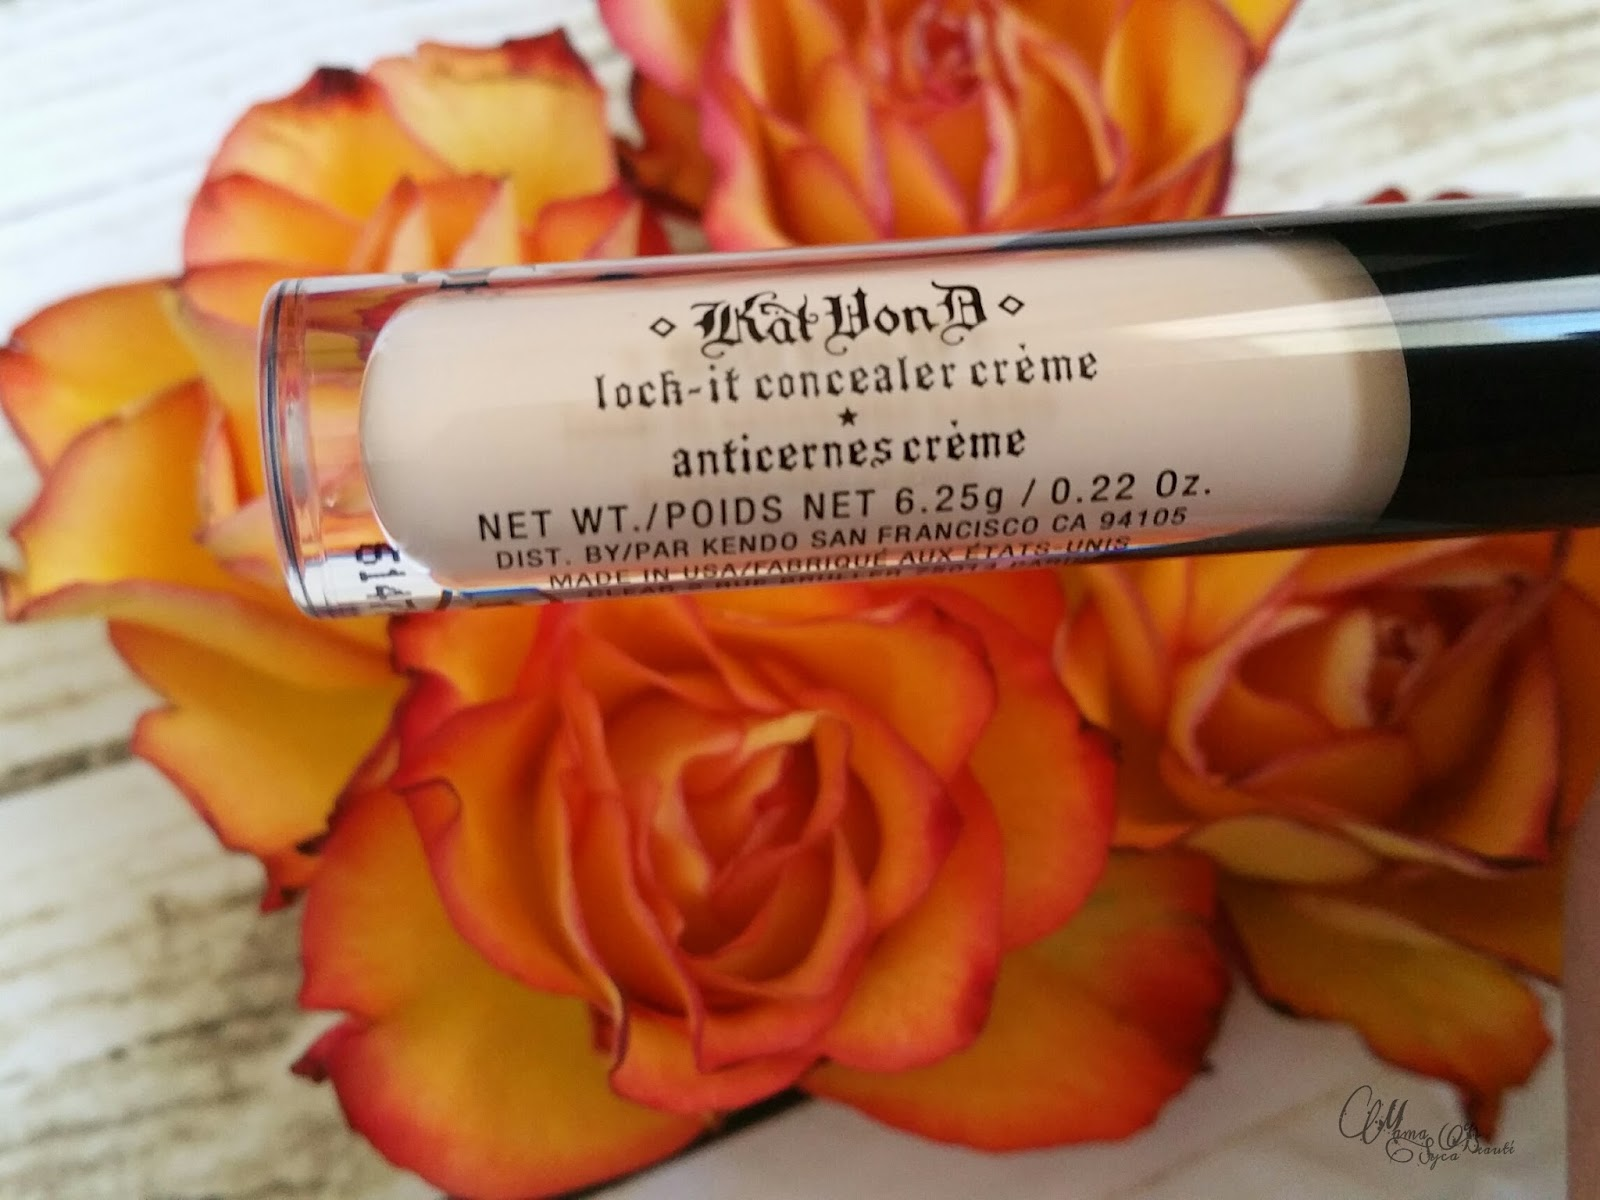 lock-it-concealer-kat-von-d-france-mama-syca-beaute